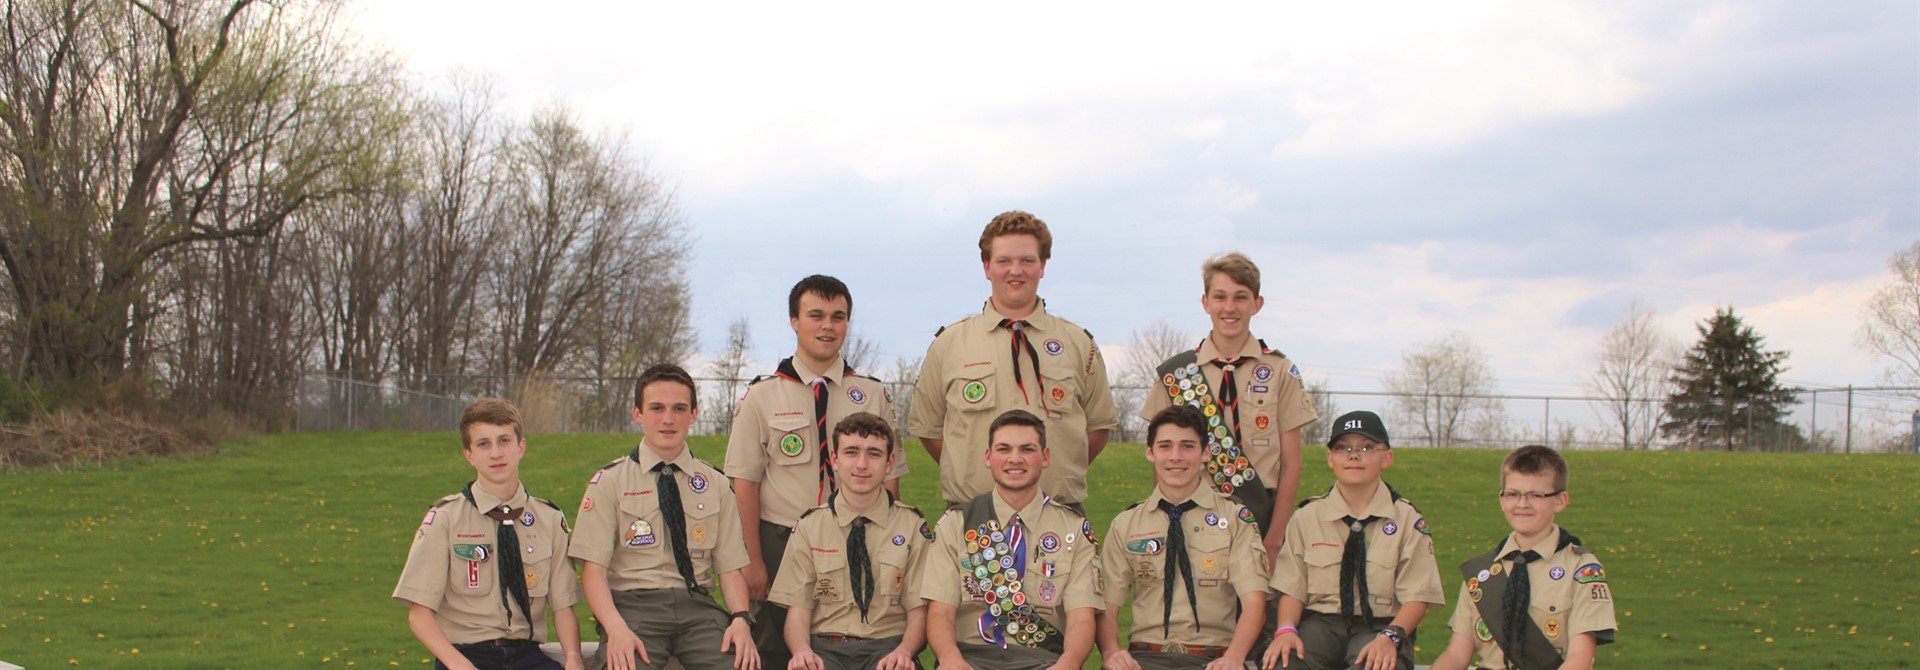 Granger Boy Scout Troop 511